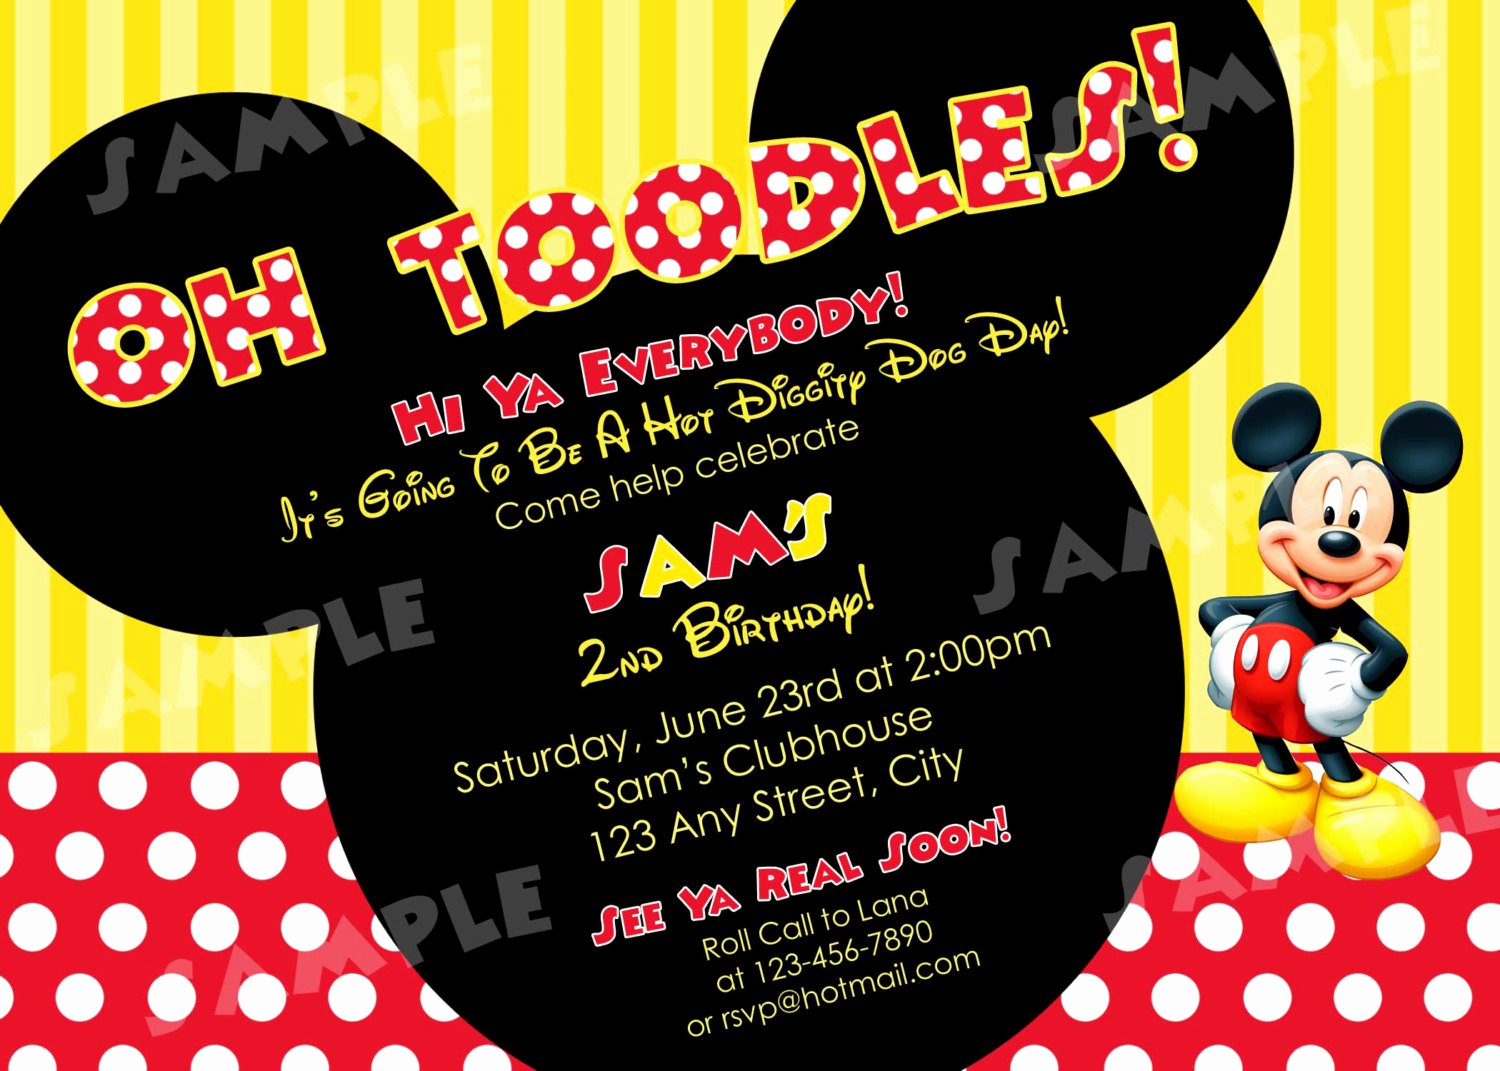 2nd Birthday Invitation Wording Lovely 2nd Birthday Invitation Wording